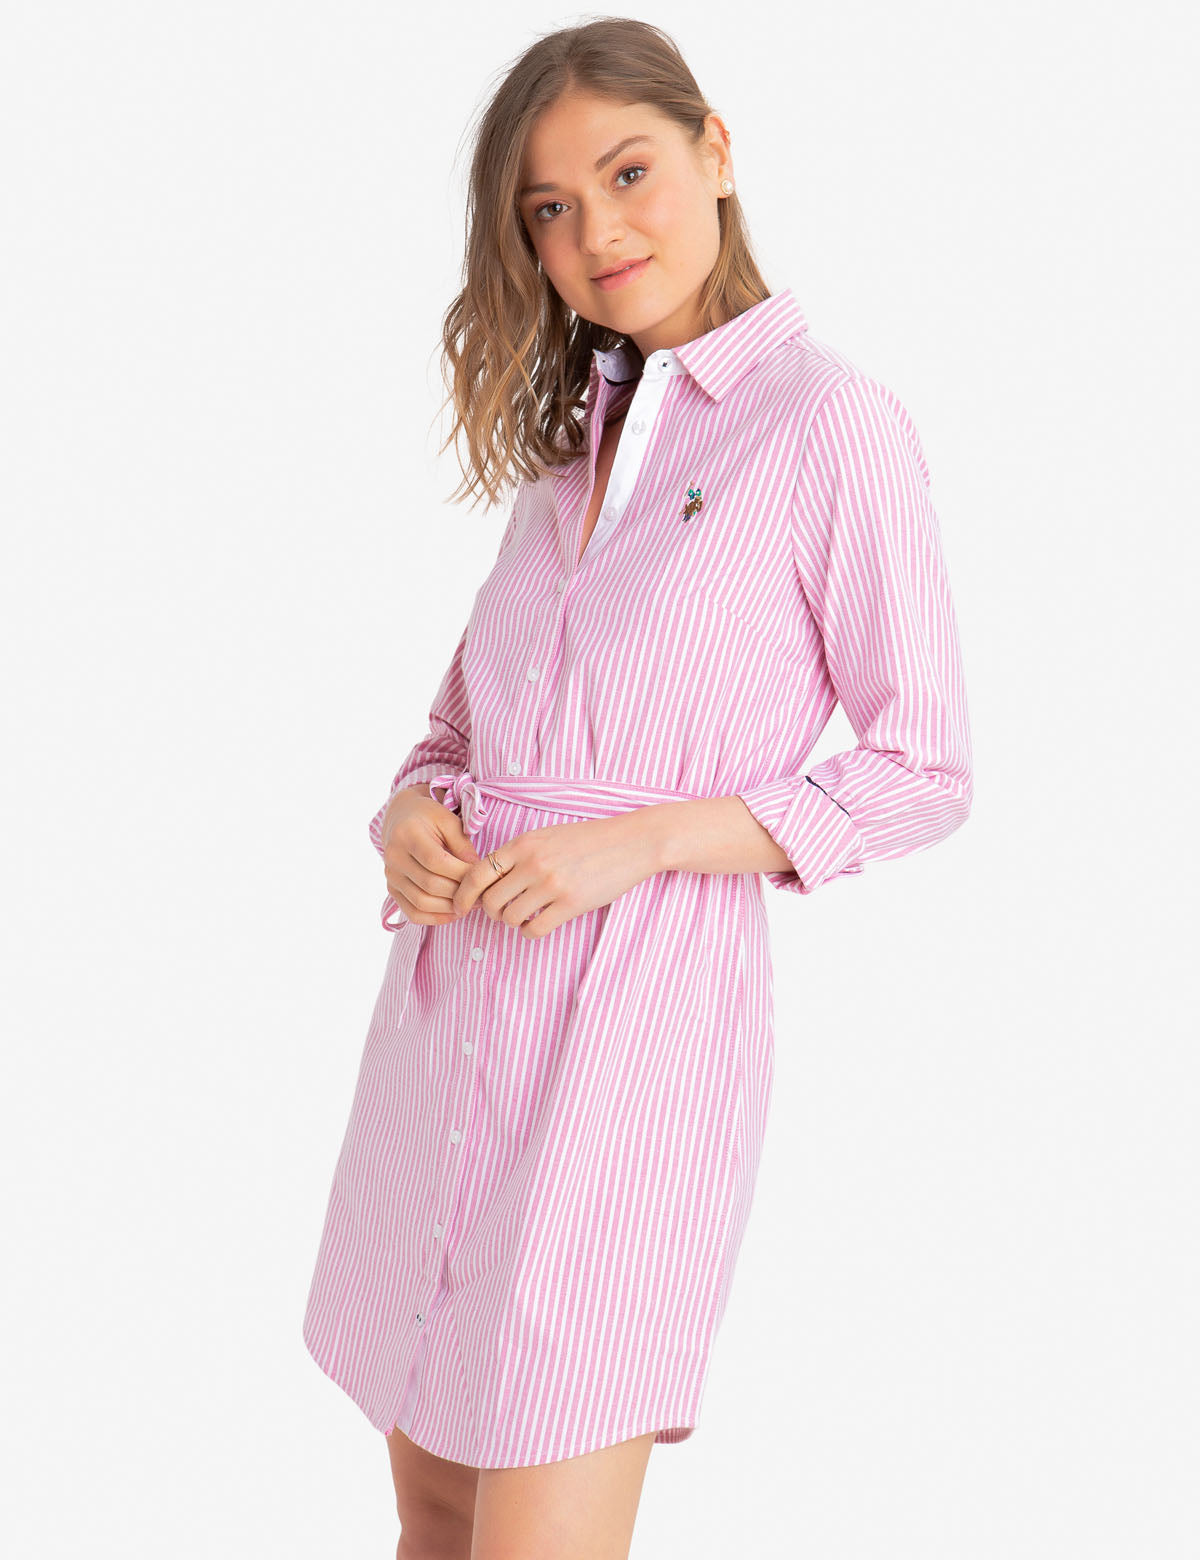 STRIPED MULTI-COLORED LOGO OXFORD DRESS